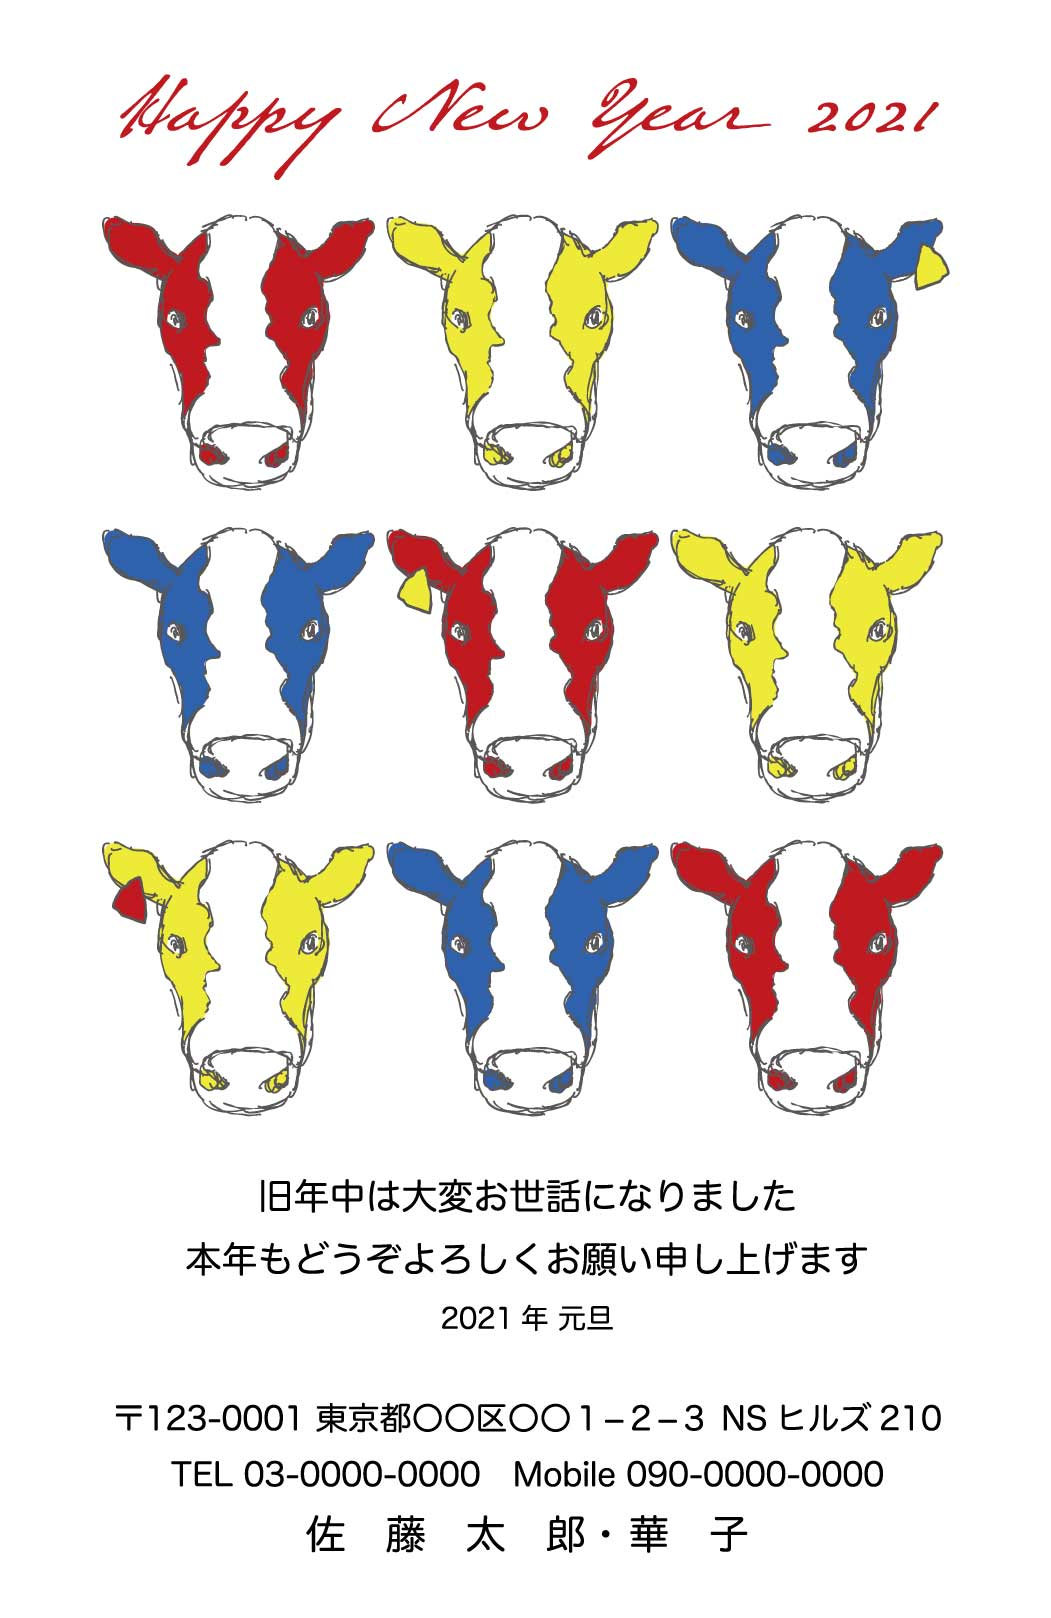 Simple and pop cows